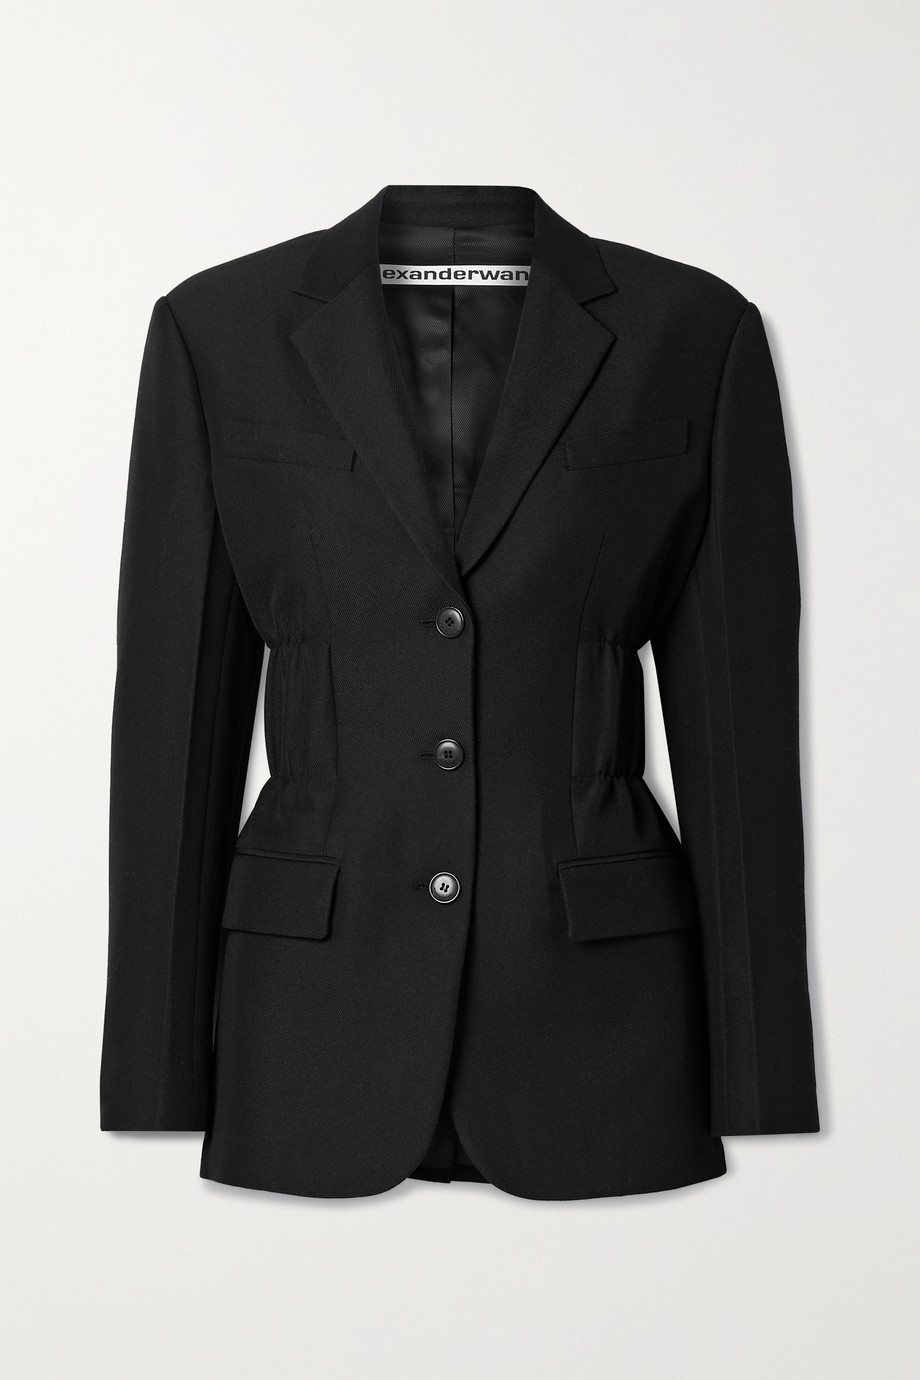 Alexander Wang Ruched wool-blend twill blazer